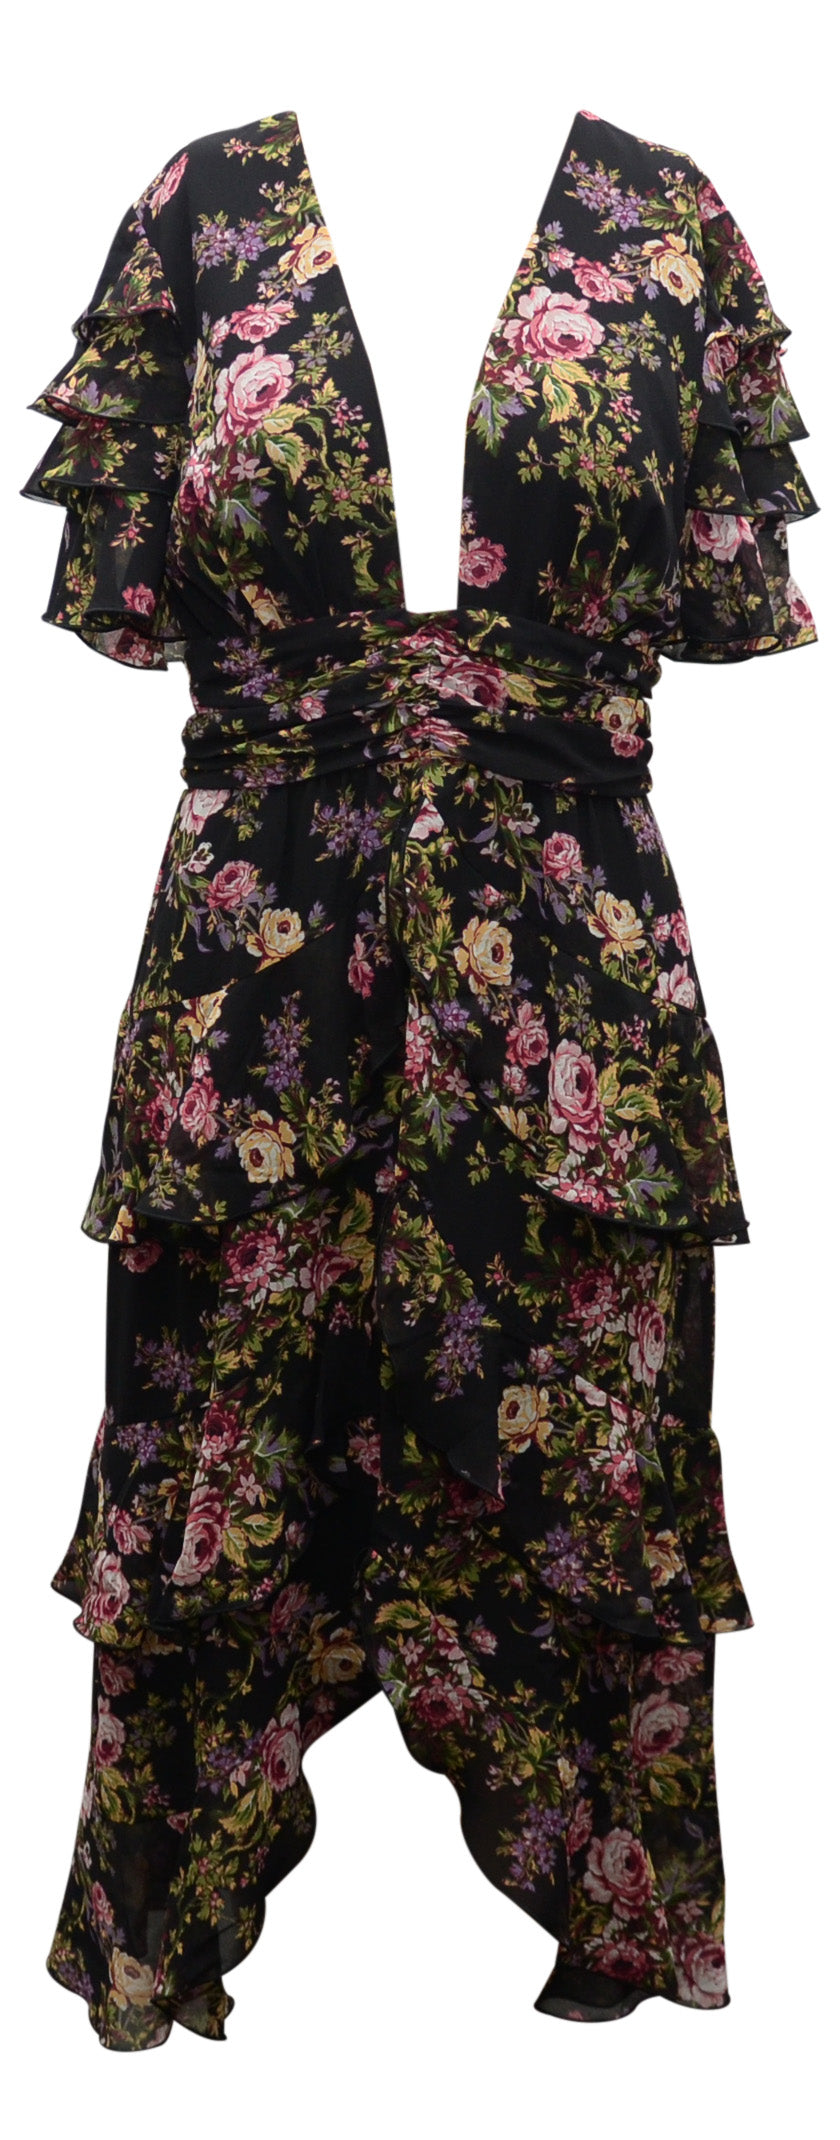 Wayf Fall floral dress